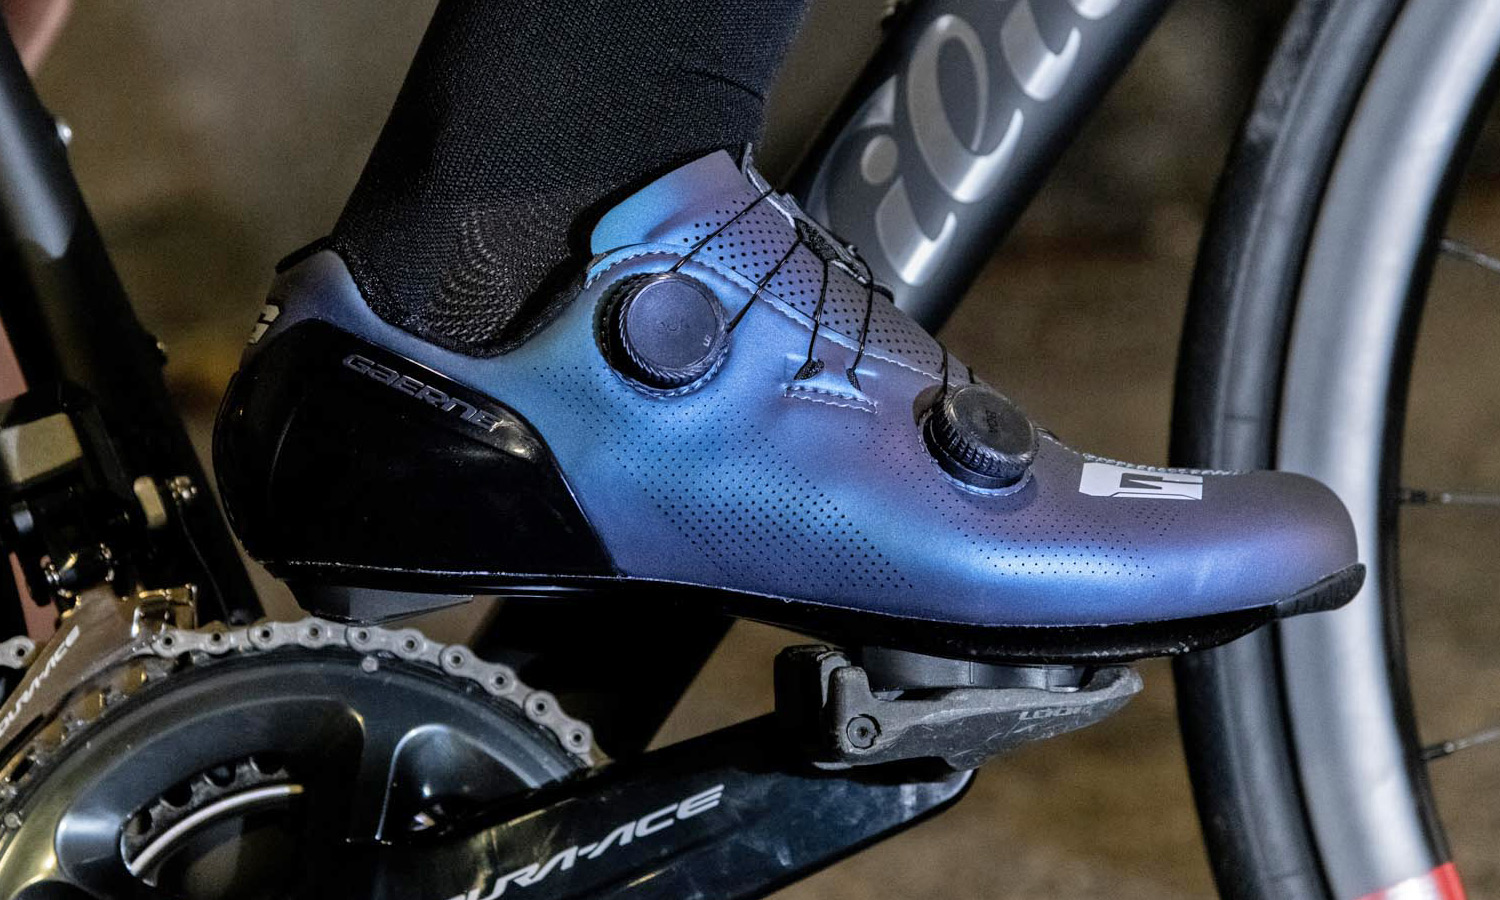 Gaerne G.STL road shoes, top-tier made-in-Italy performance carbon road race bike shoe, shiny purple